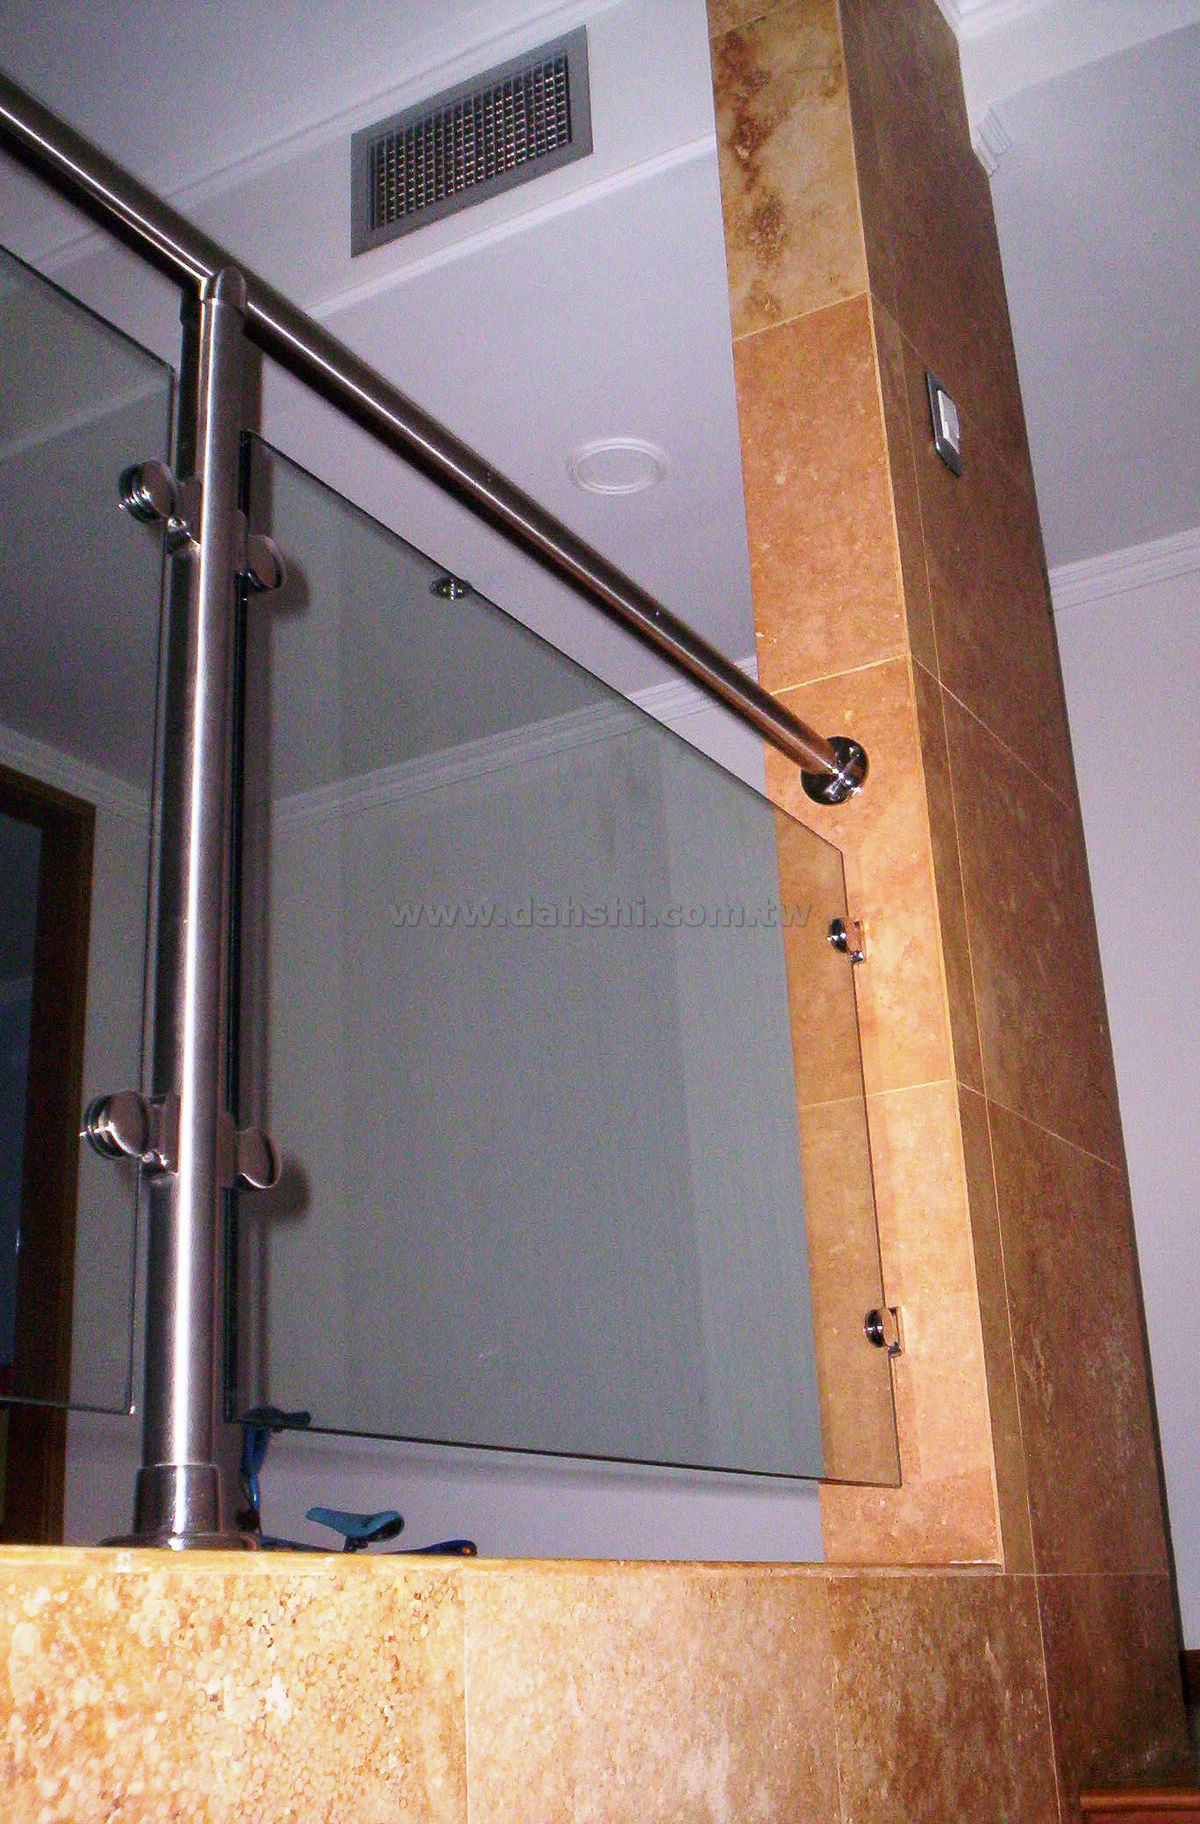 Handrail and Balusters Story สำหรับ El Universo Del